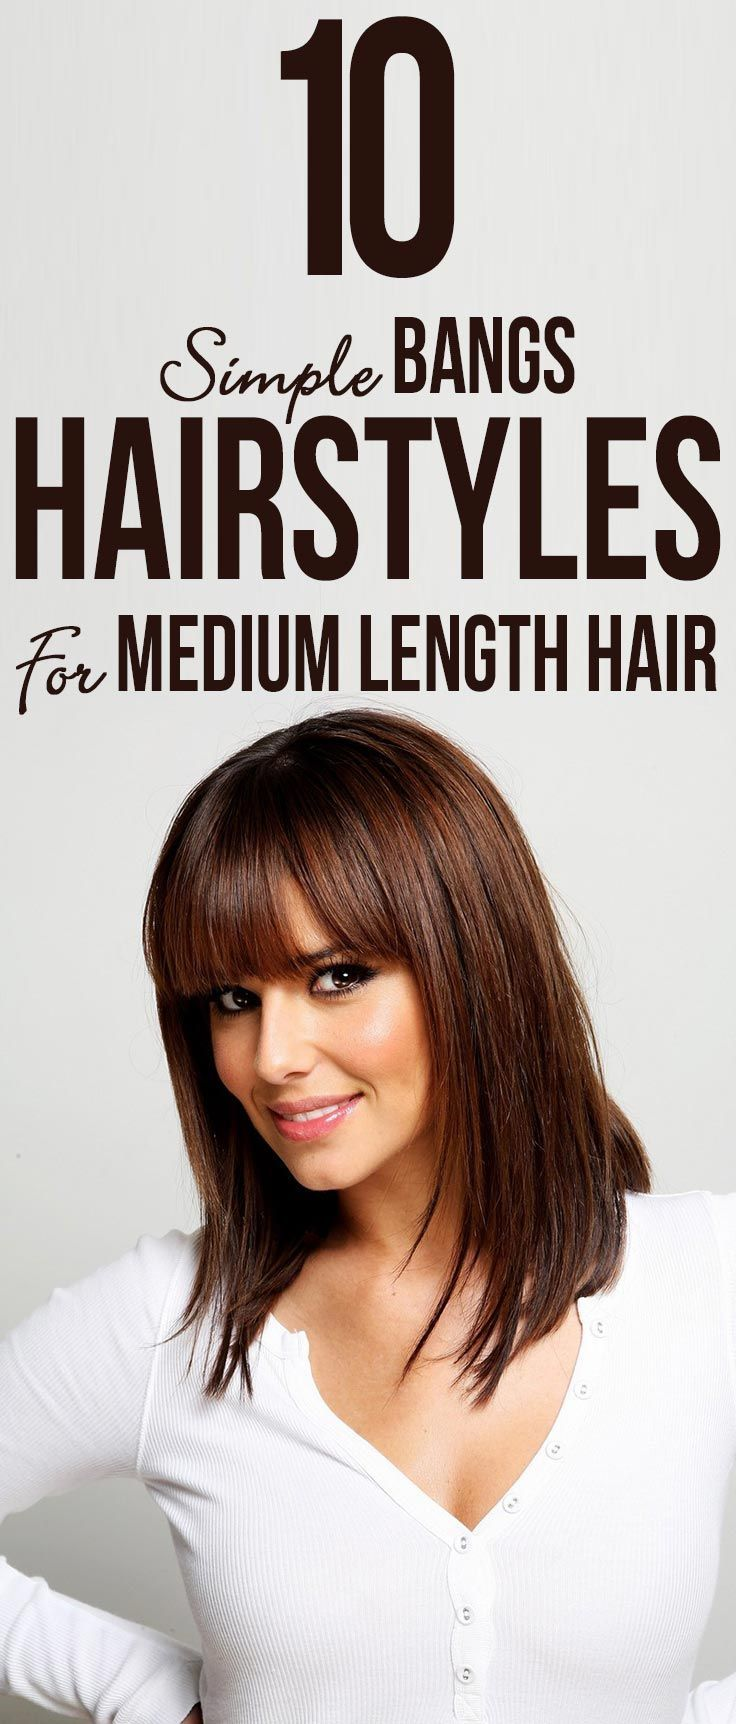 Katie lowes long wavy casual hairstyle thehairstyler com - 10 Simple Bangs Hairstyles For Medium Length Hair